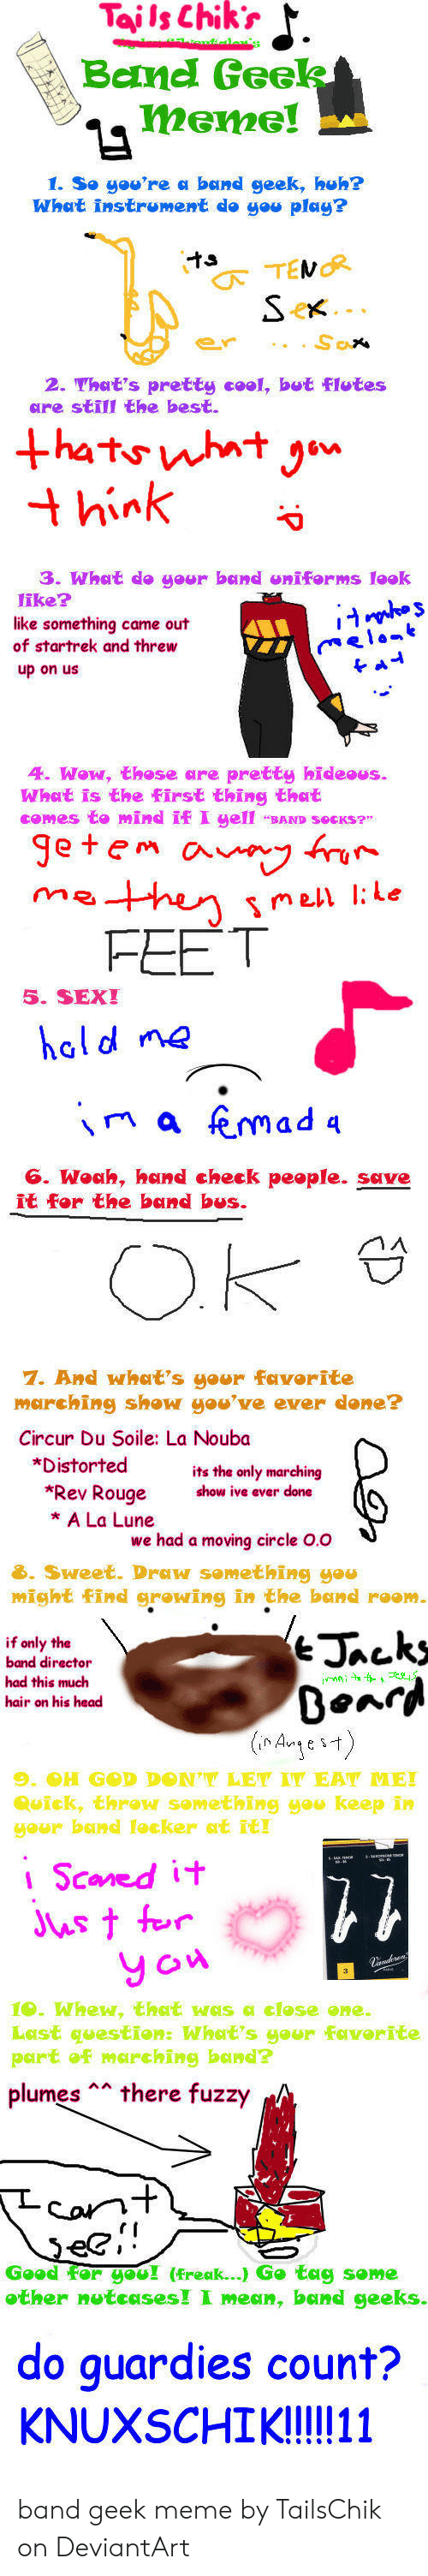 Band Geek Meme: TajlsChikr  Bamd Gee  1. So you're ศ bund geek, huh?  What instroment do you play?  2. Yhat's pretty cool, but Flotes  are still the best.  3. What do goor band eniforms look  like?  like something came out  of startrek and threw  up on us  4. Wow, those are pretty hideous.  What is the First thing that  comes to mind if I gell BAND SocKs  getem ovy  FEET  5. SEXI  hal d ne  na femad a  G. Woah, hand check people. save  it for the band bus.  7. And what's yer Favorite  marching show you've ever done?  Circur Du Soile: La Noubo  *Distorted  its the only marching  show ive ever done  Rev Rouge  * A La Lune  we had a moving circle O.o  3. Sweet. Draw something you  might Find growing in the bend roo  if only the  band director  had this much  hair on his head  (nArye 1)  9-OH GⓗD DDN'T LET IT EAT ME!  ๑uick, threw samething you keep in  your bond lecker t ie  Scaned it  Jus t r  y ow  Last qeestion: What's gour Faverite  part oFmarching bande  plumes there fuzzy  Corn  Geed ou! (freak ) Ge tag seme  ather nutcasesI I mesn, bond geeks  do quardies count?  KNUXSCHIKI!l!11 band geek meme by TailsChik on DeviantArt